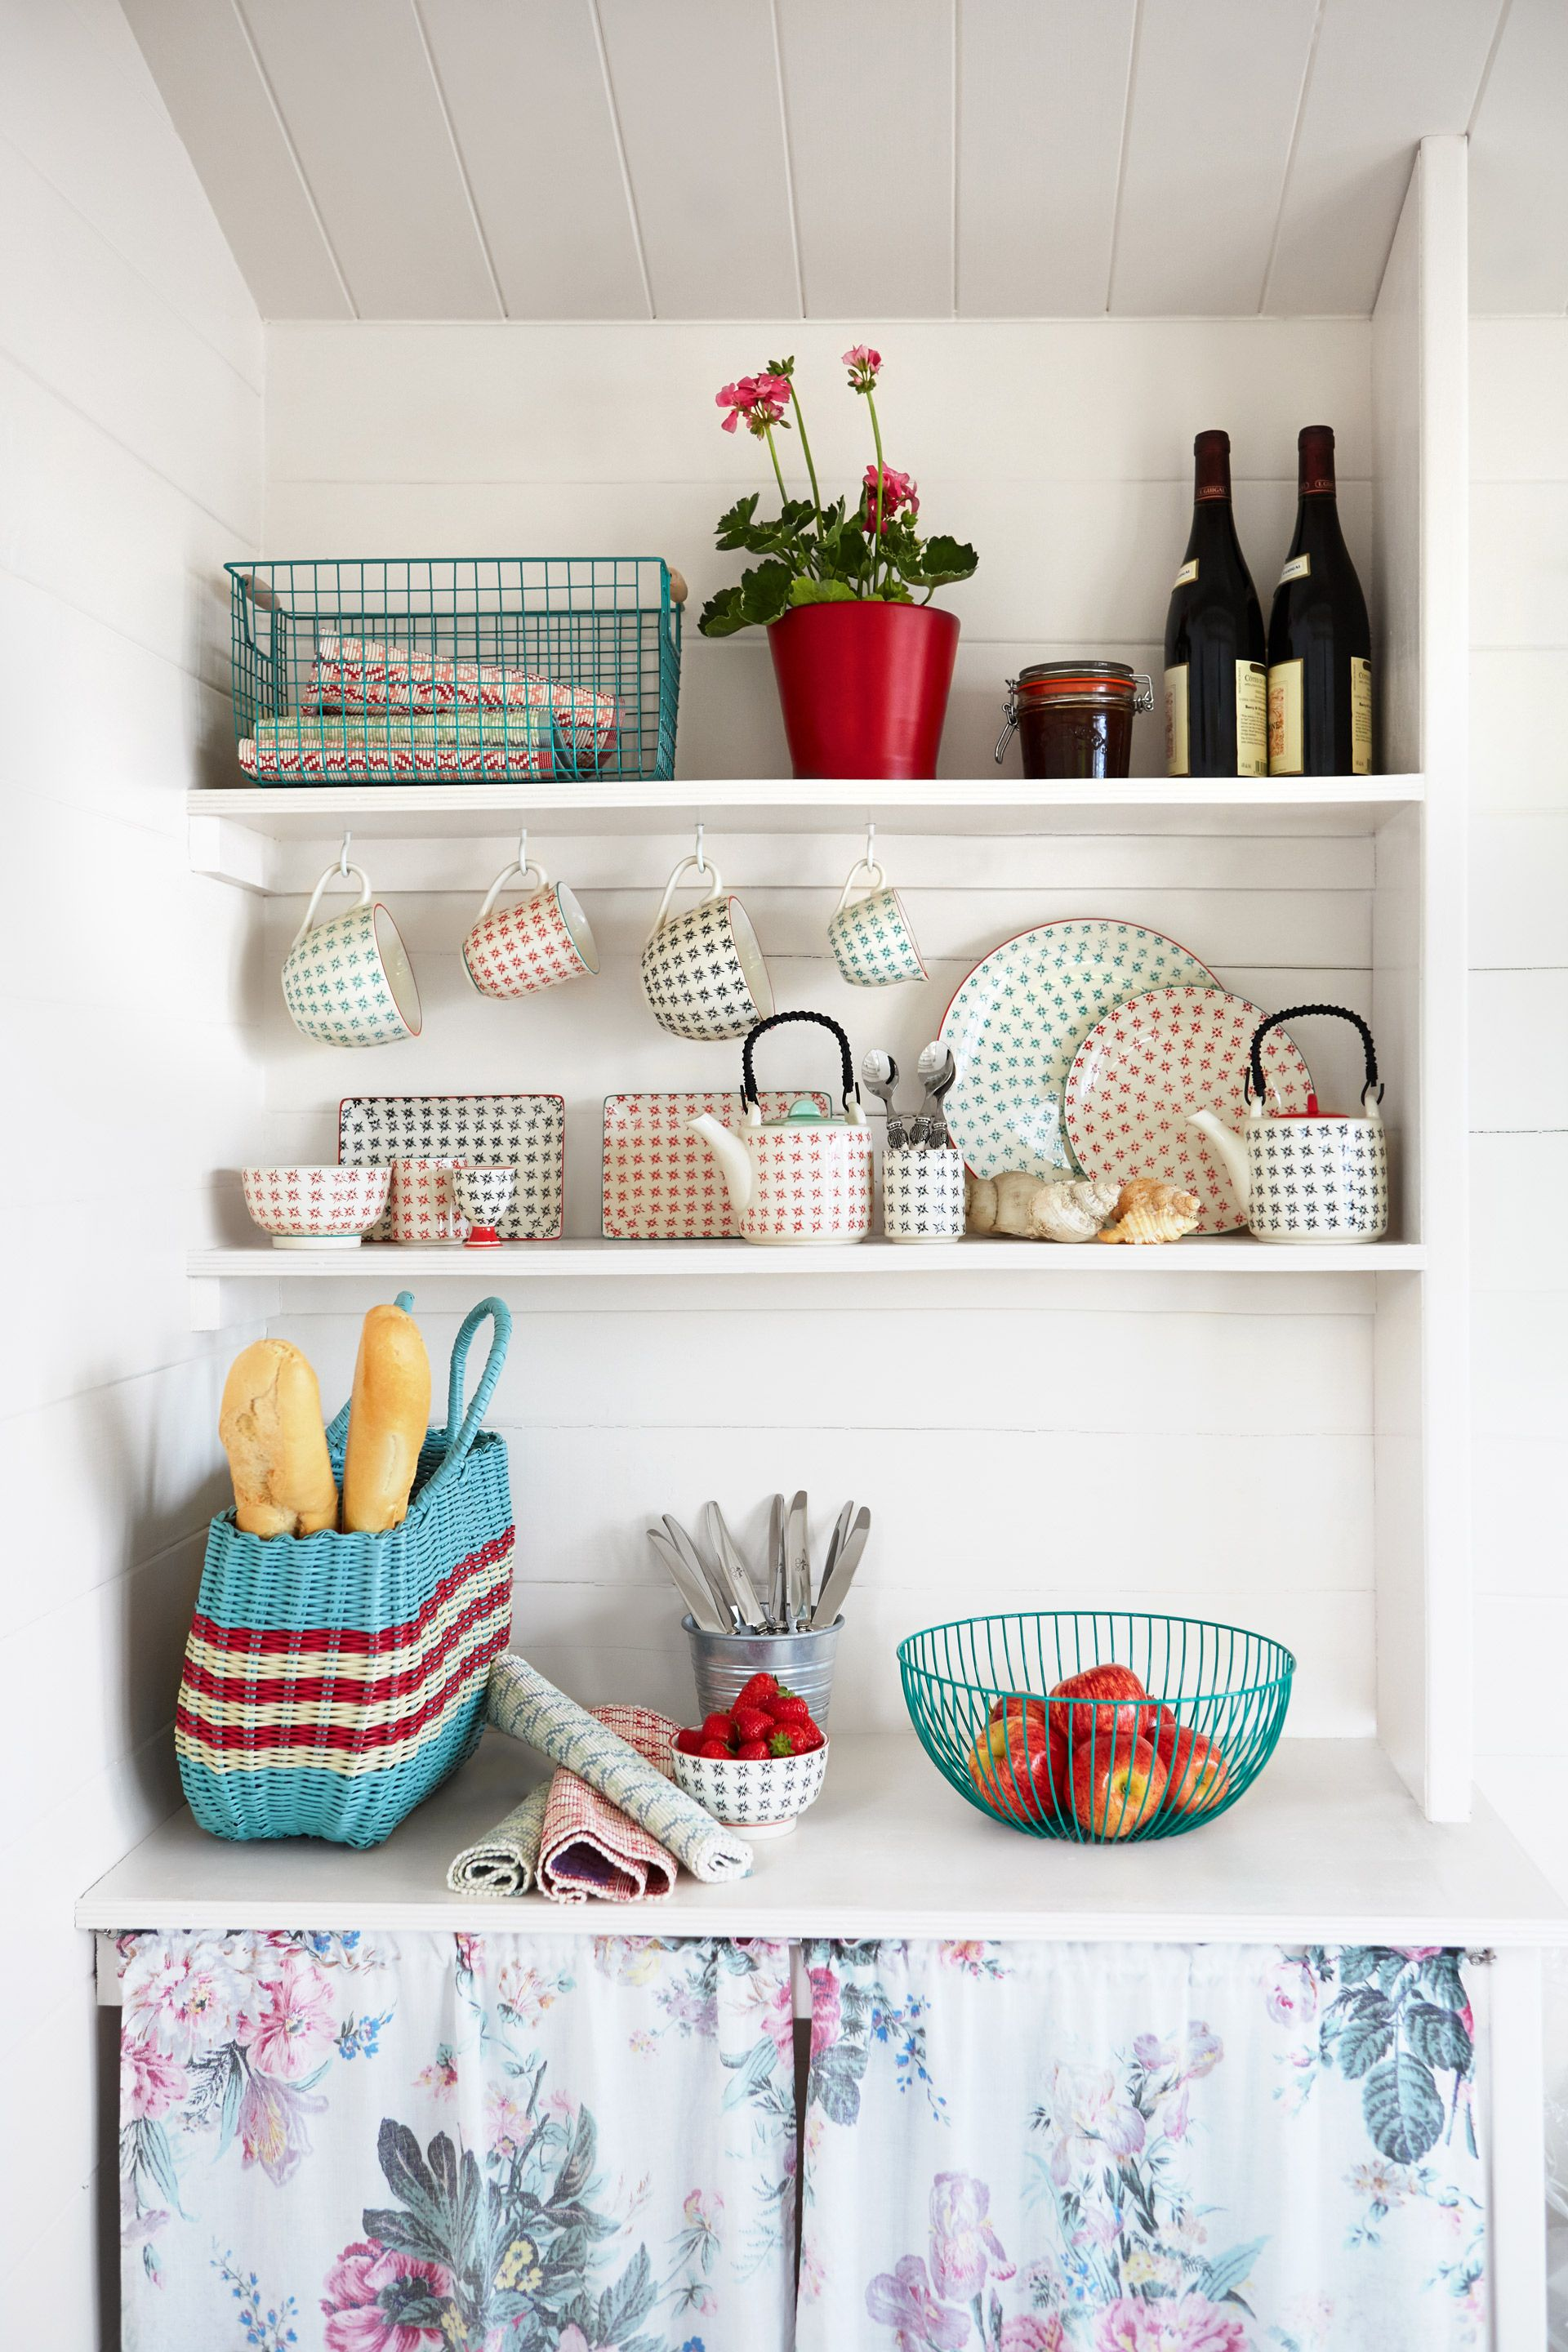 Colourful homewares by Carolyn Donnelly eclectic, exclusively for ...